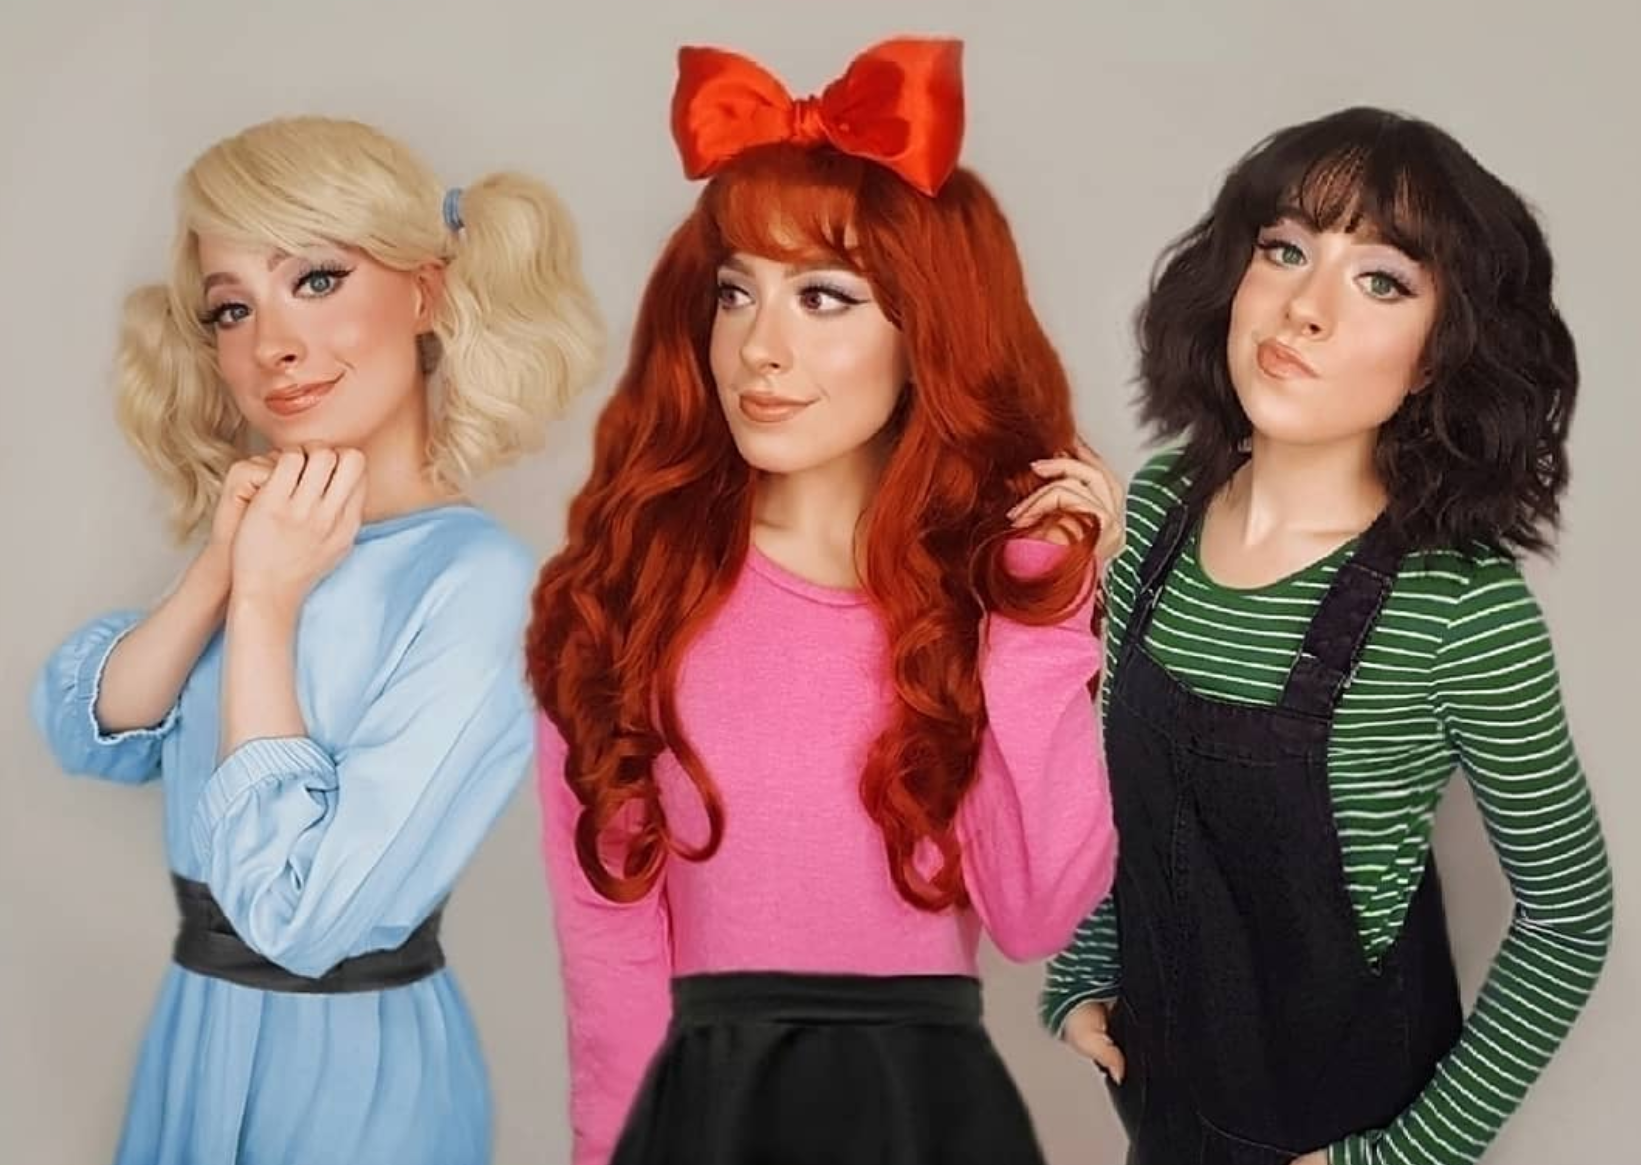 Three girls are dressed in pink and blue and green.